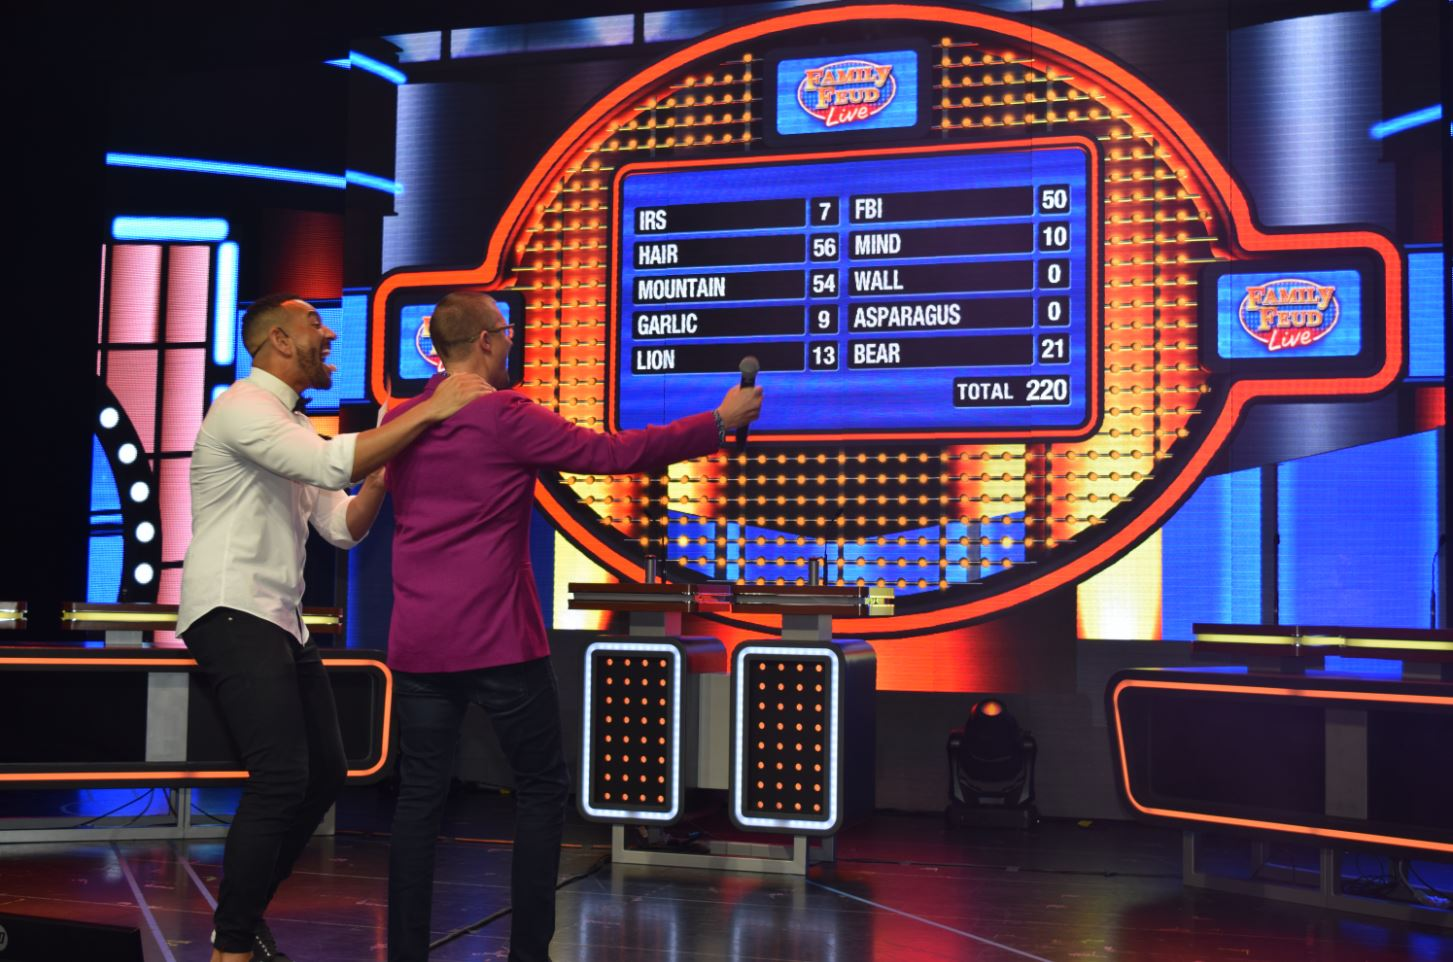 Carnival Previews Family Feud Live to be Featured on Mardi Gras